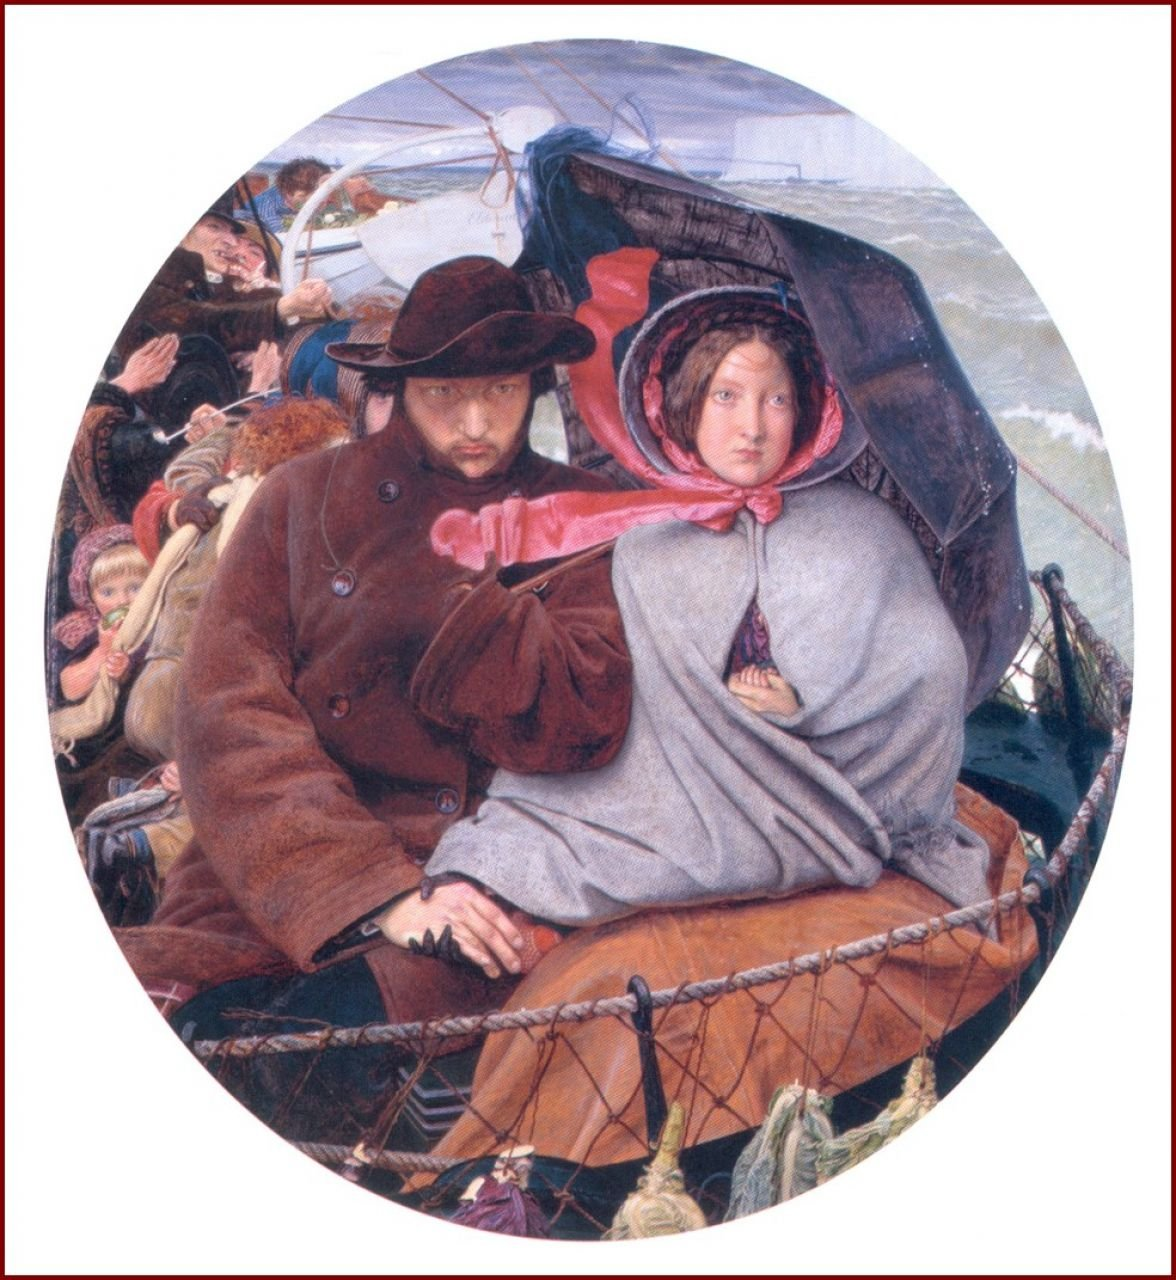 Ford Madox Brown - The last of England (1855)